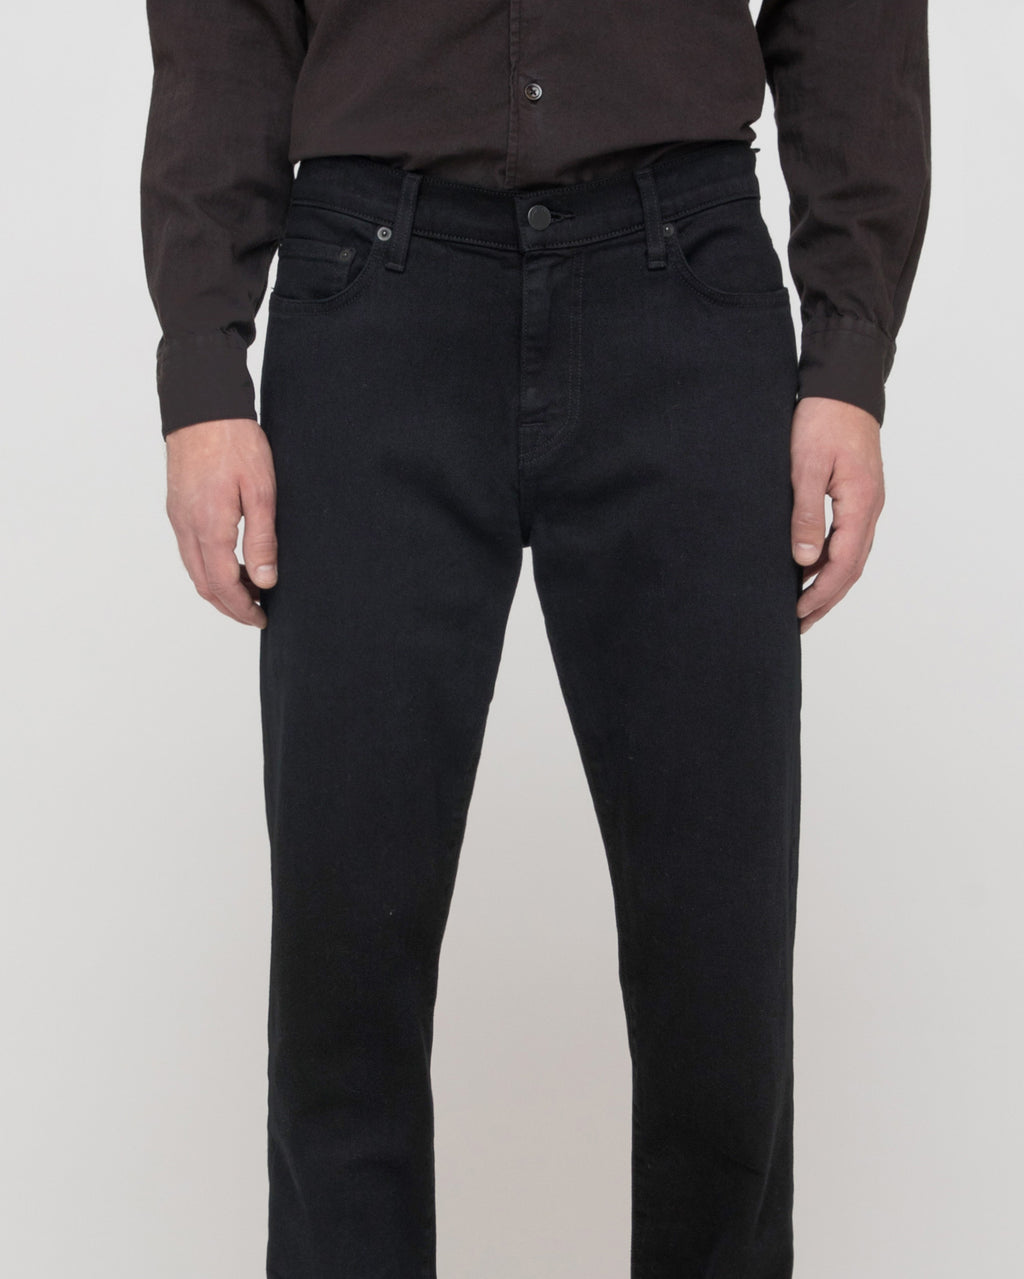 The Brennan Jean in Black